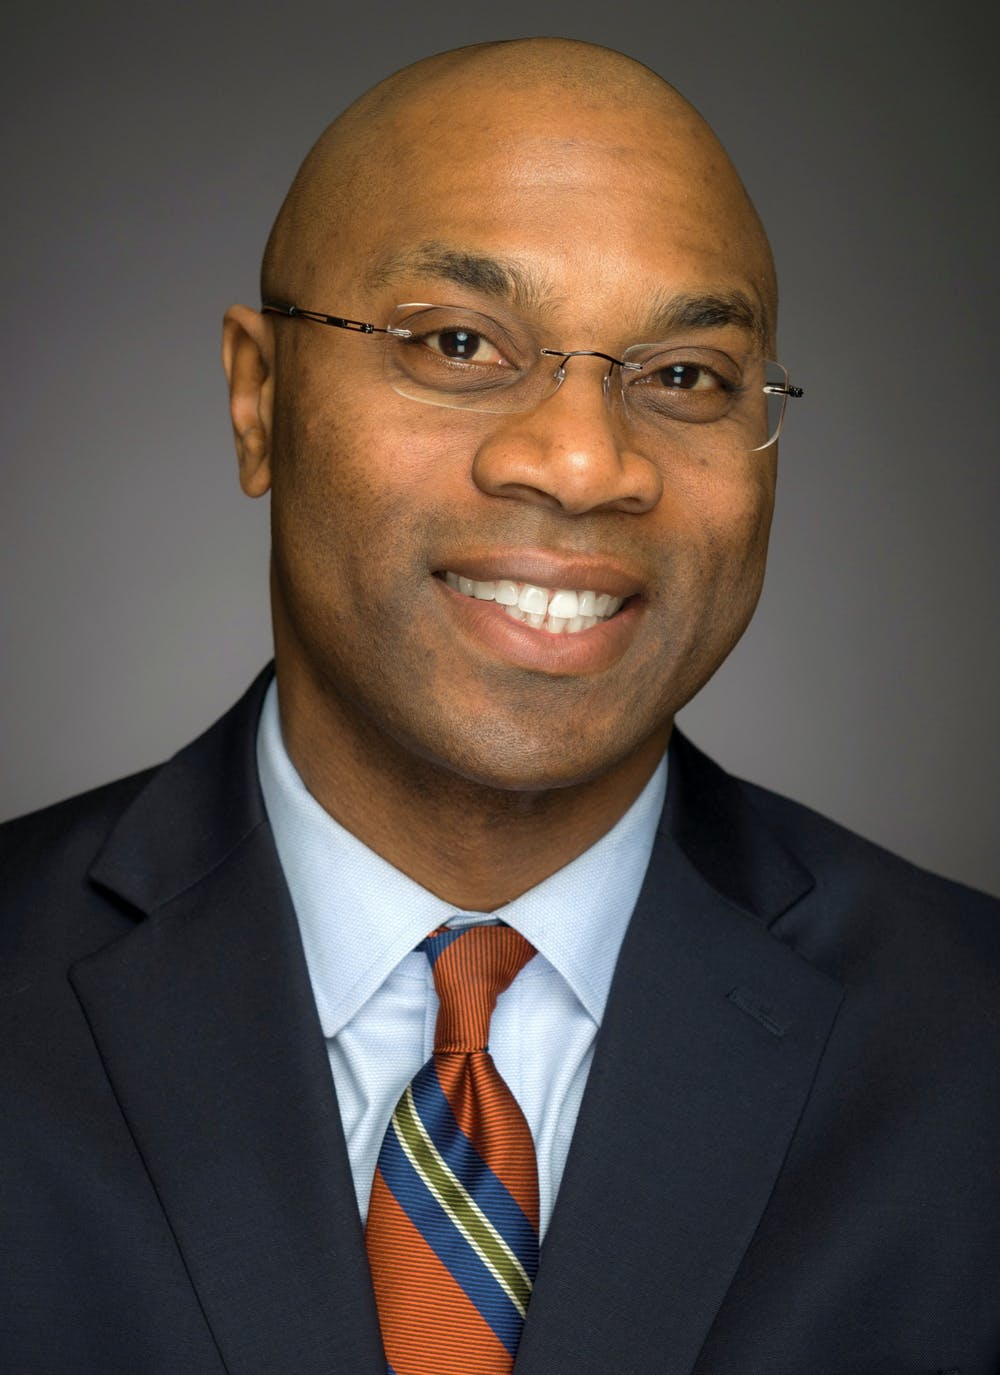 <p>Photo of Jabbar R. Bennett, courtesy of MSU communications. Bennett was announced as the vice president and chief diversity officer Oct. 6, 2020. </p>